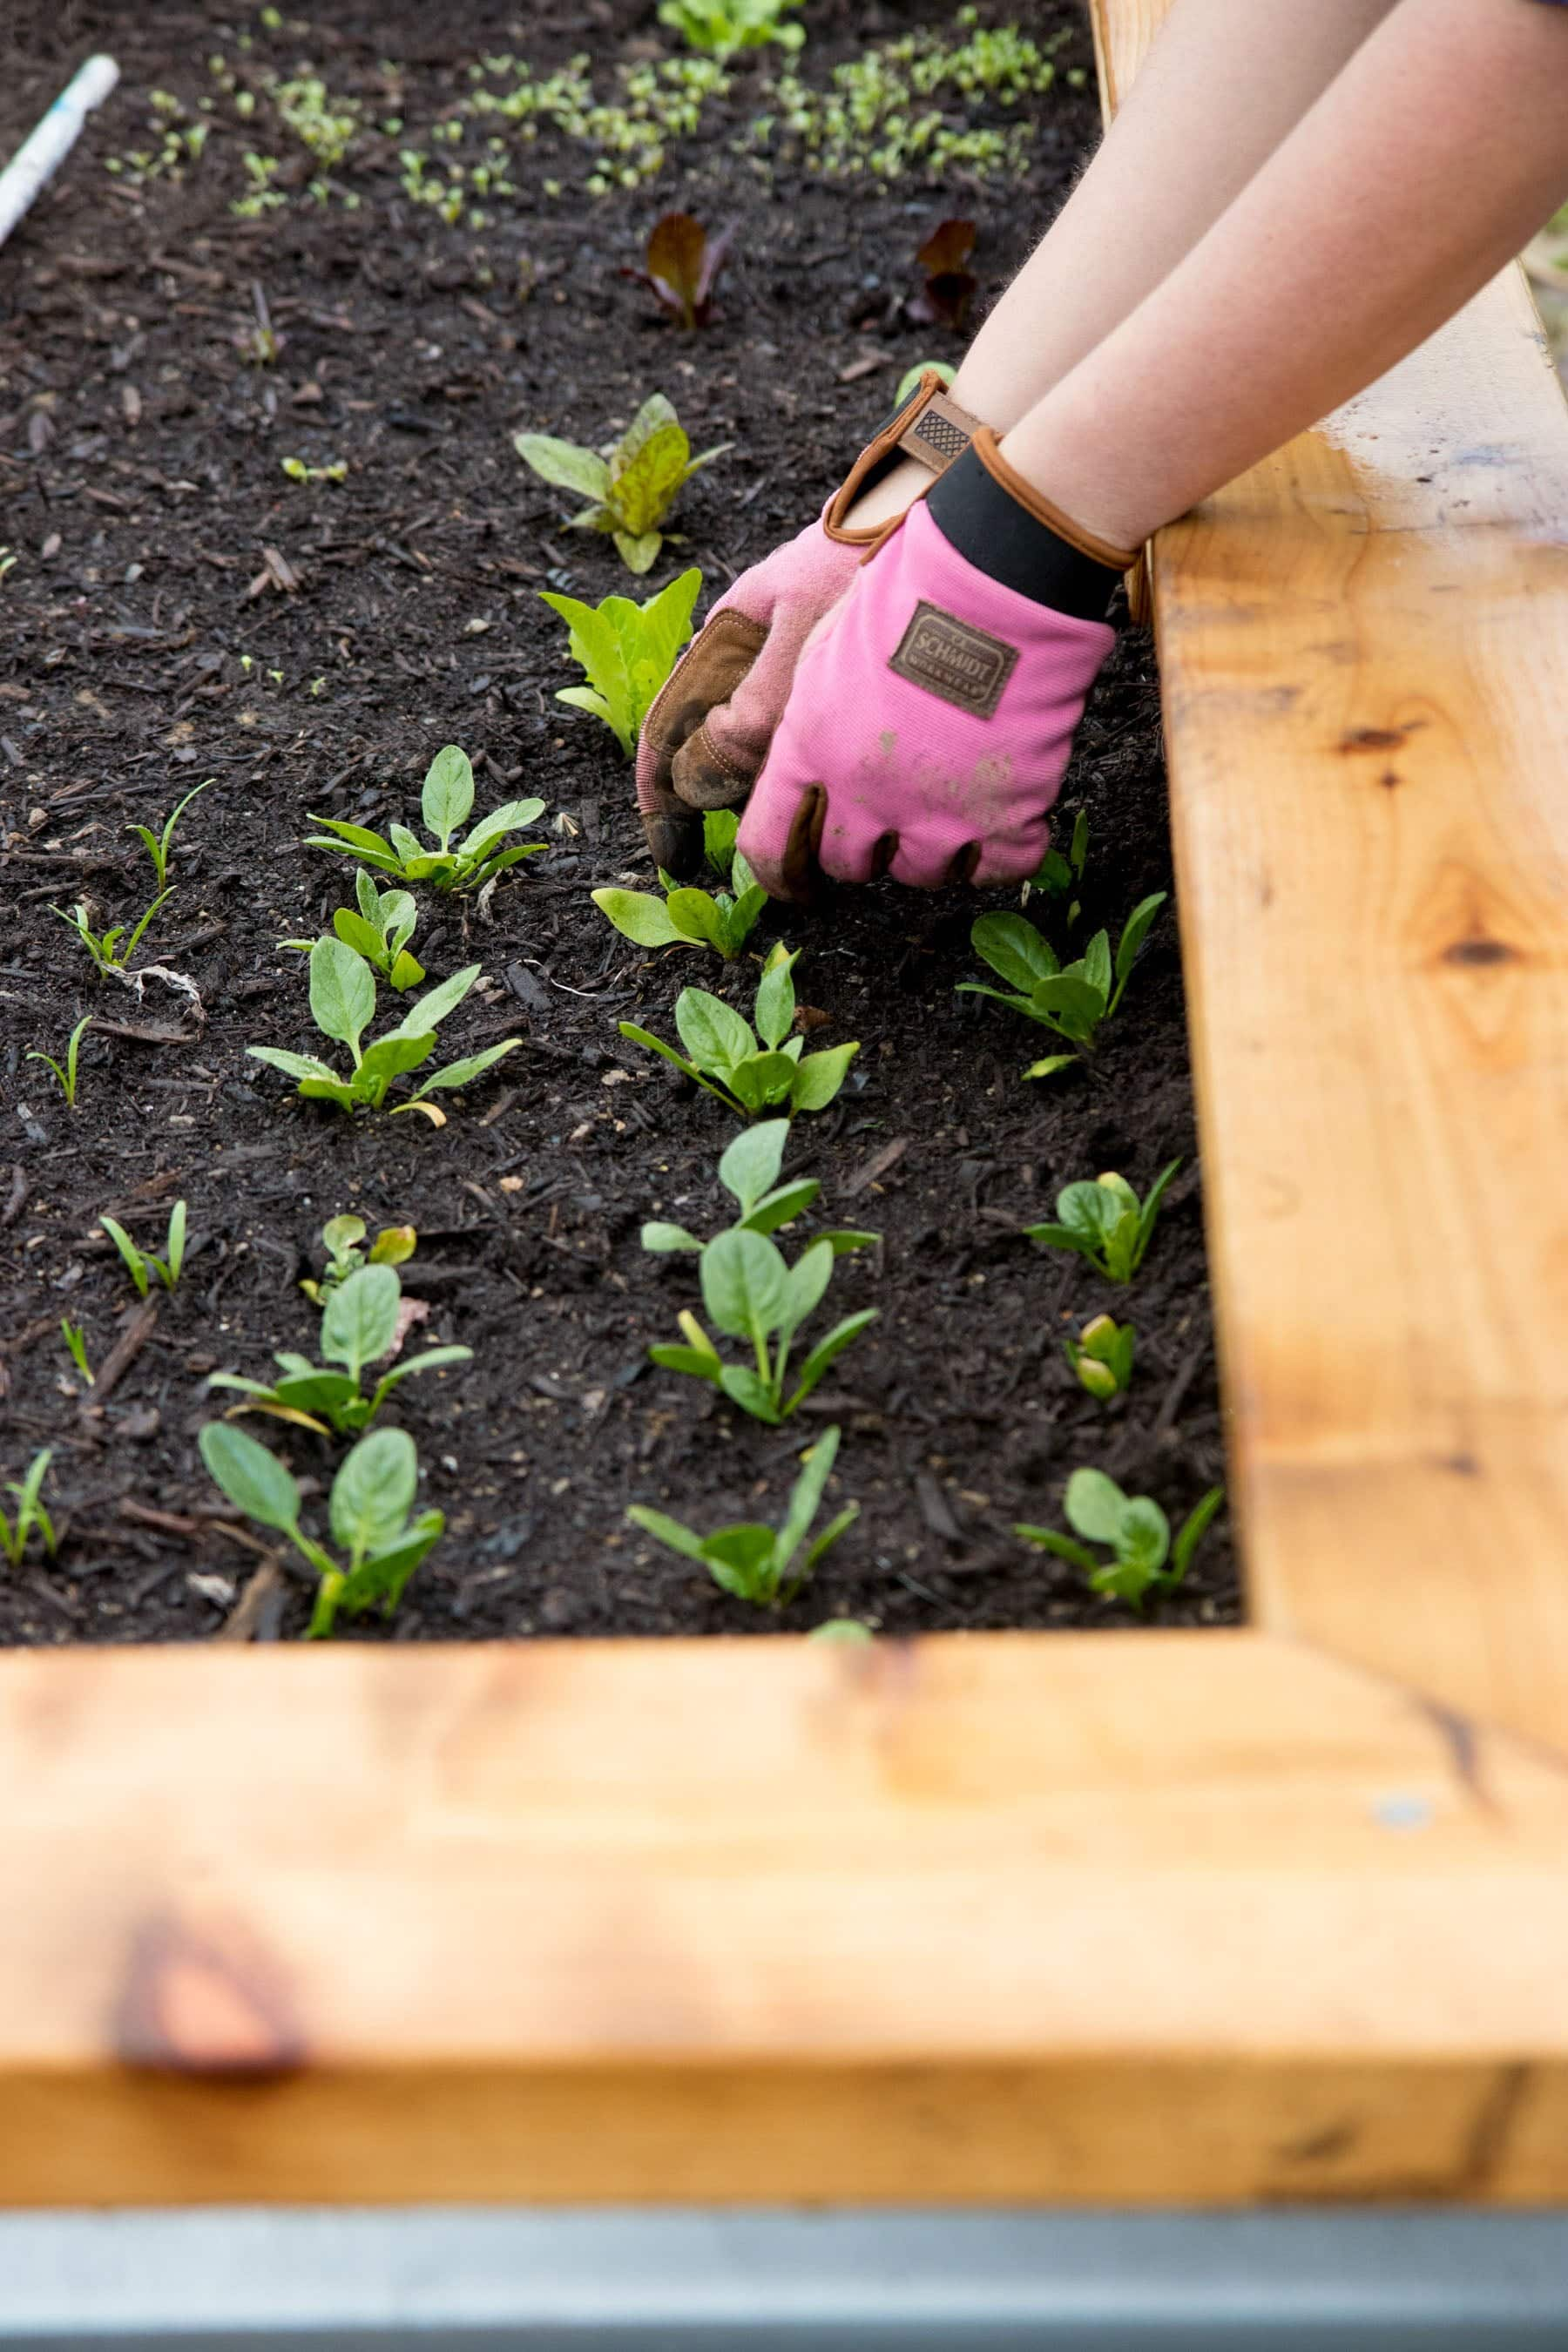 Hands in pink gardening gloves planting spinach in a raised bed